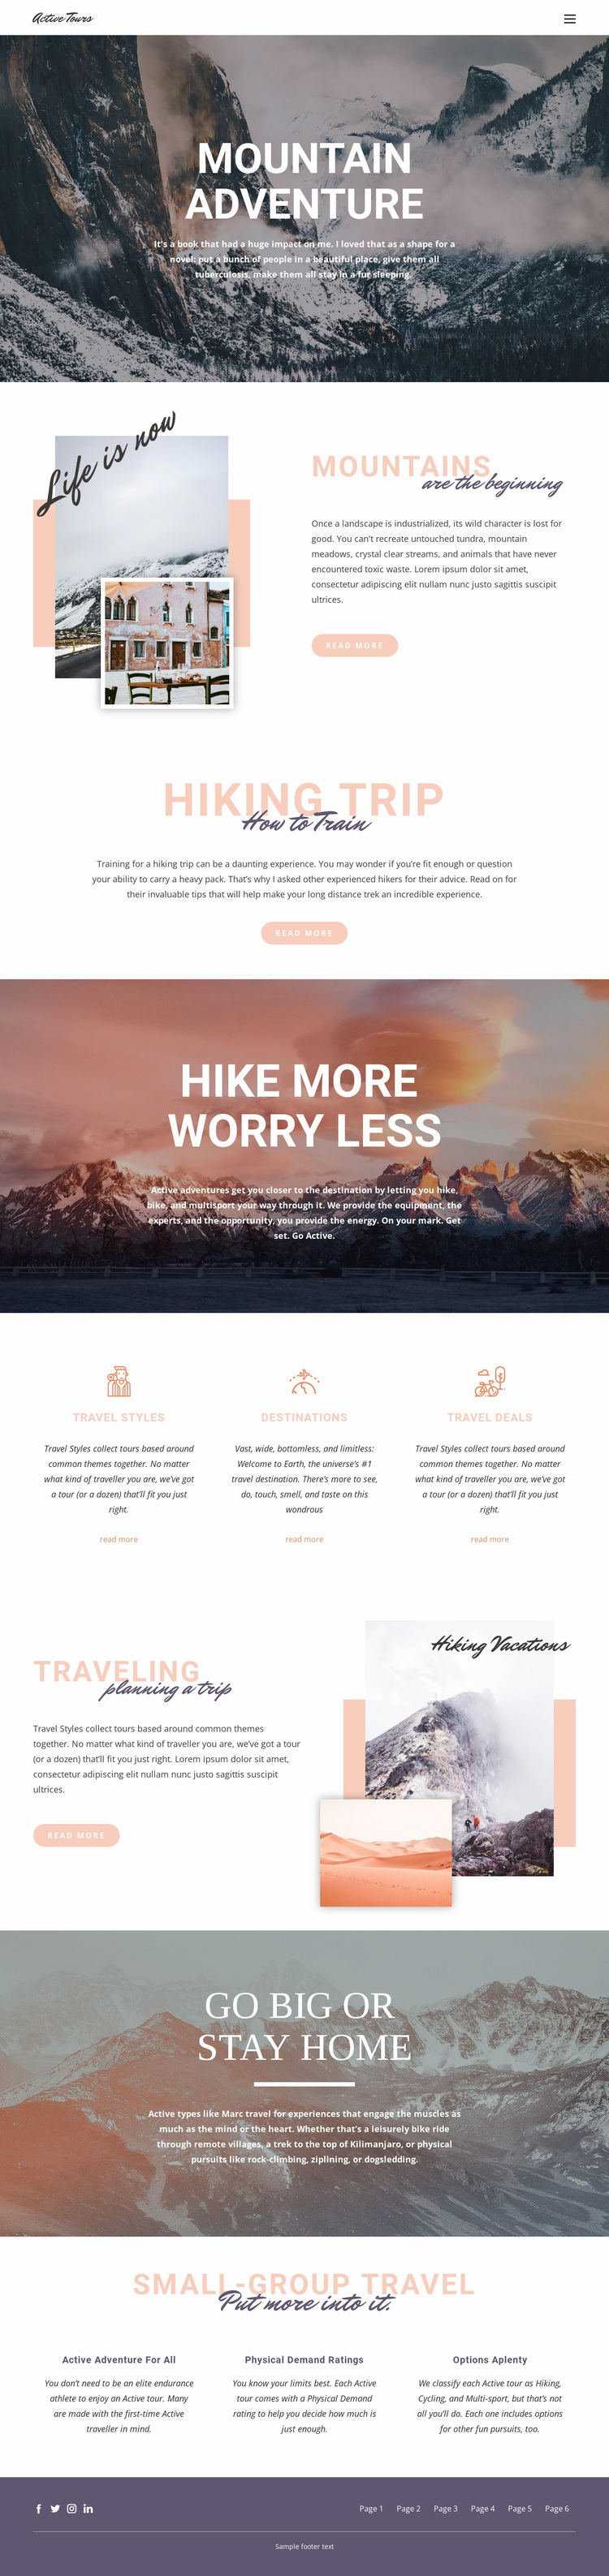 Mountain Adventure Website Design